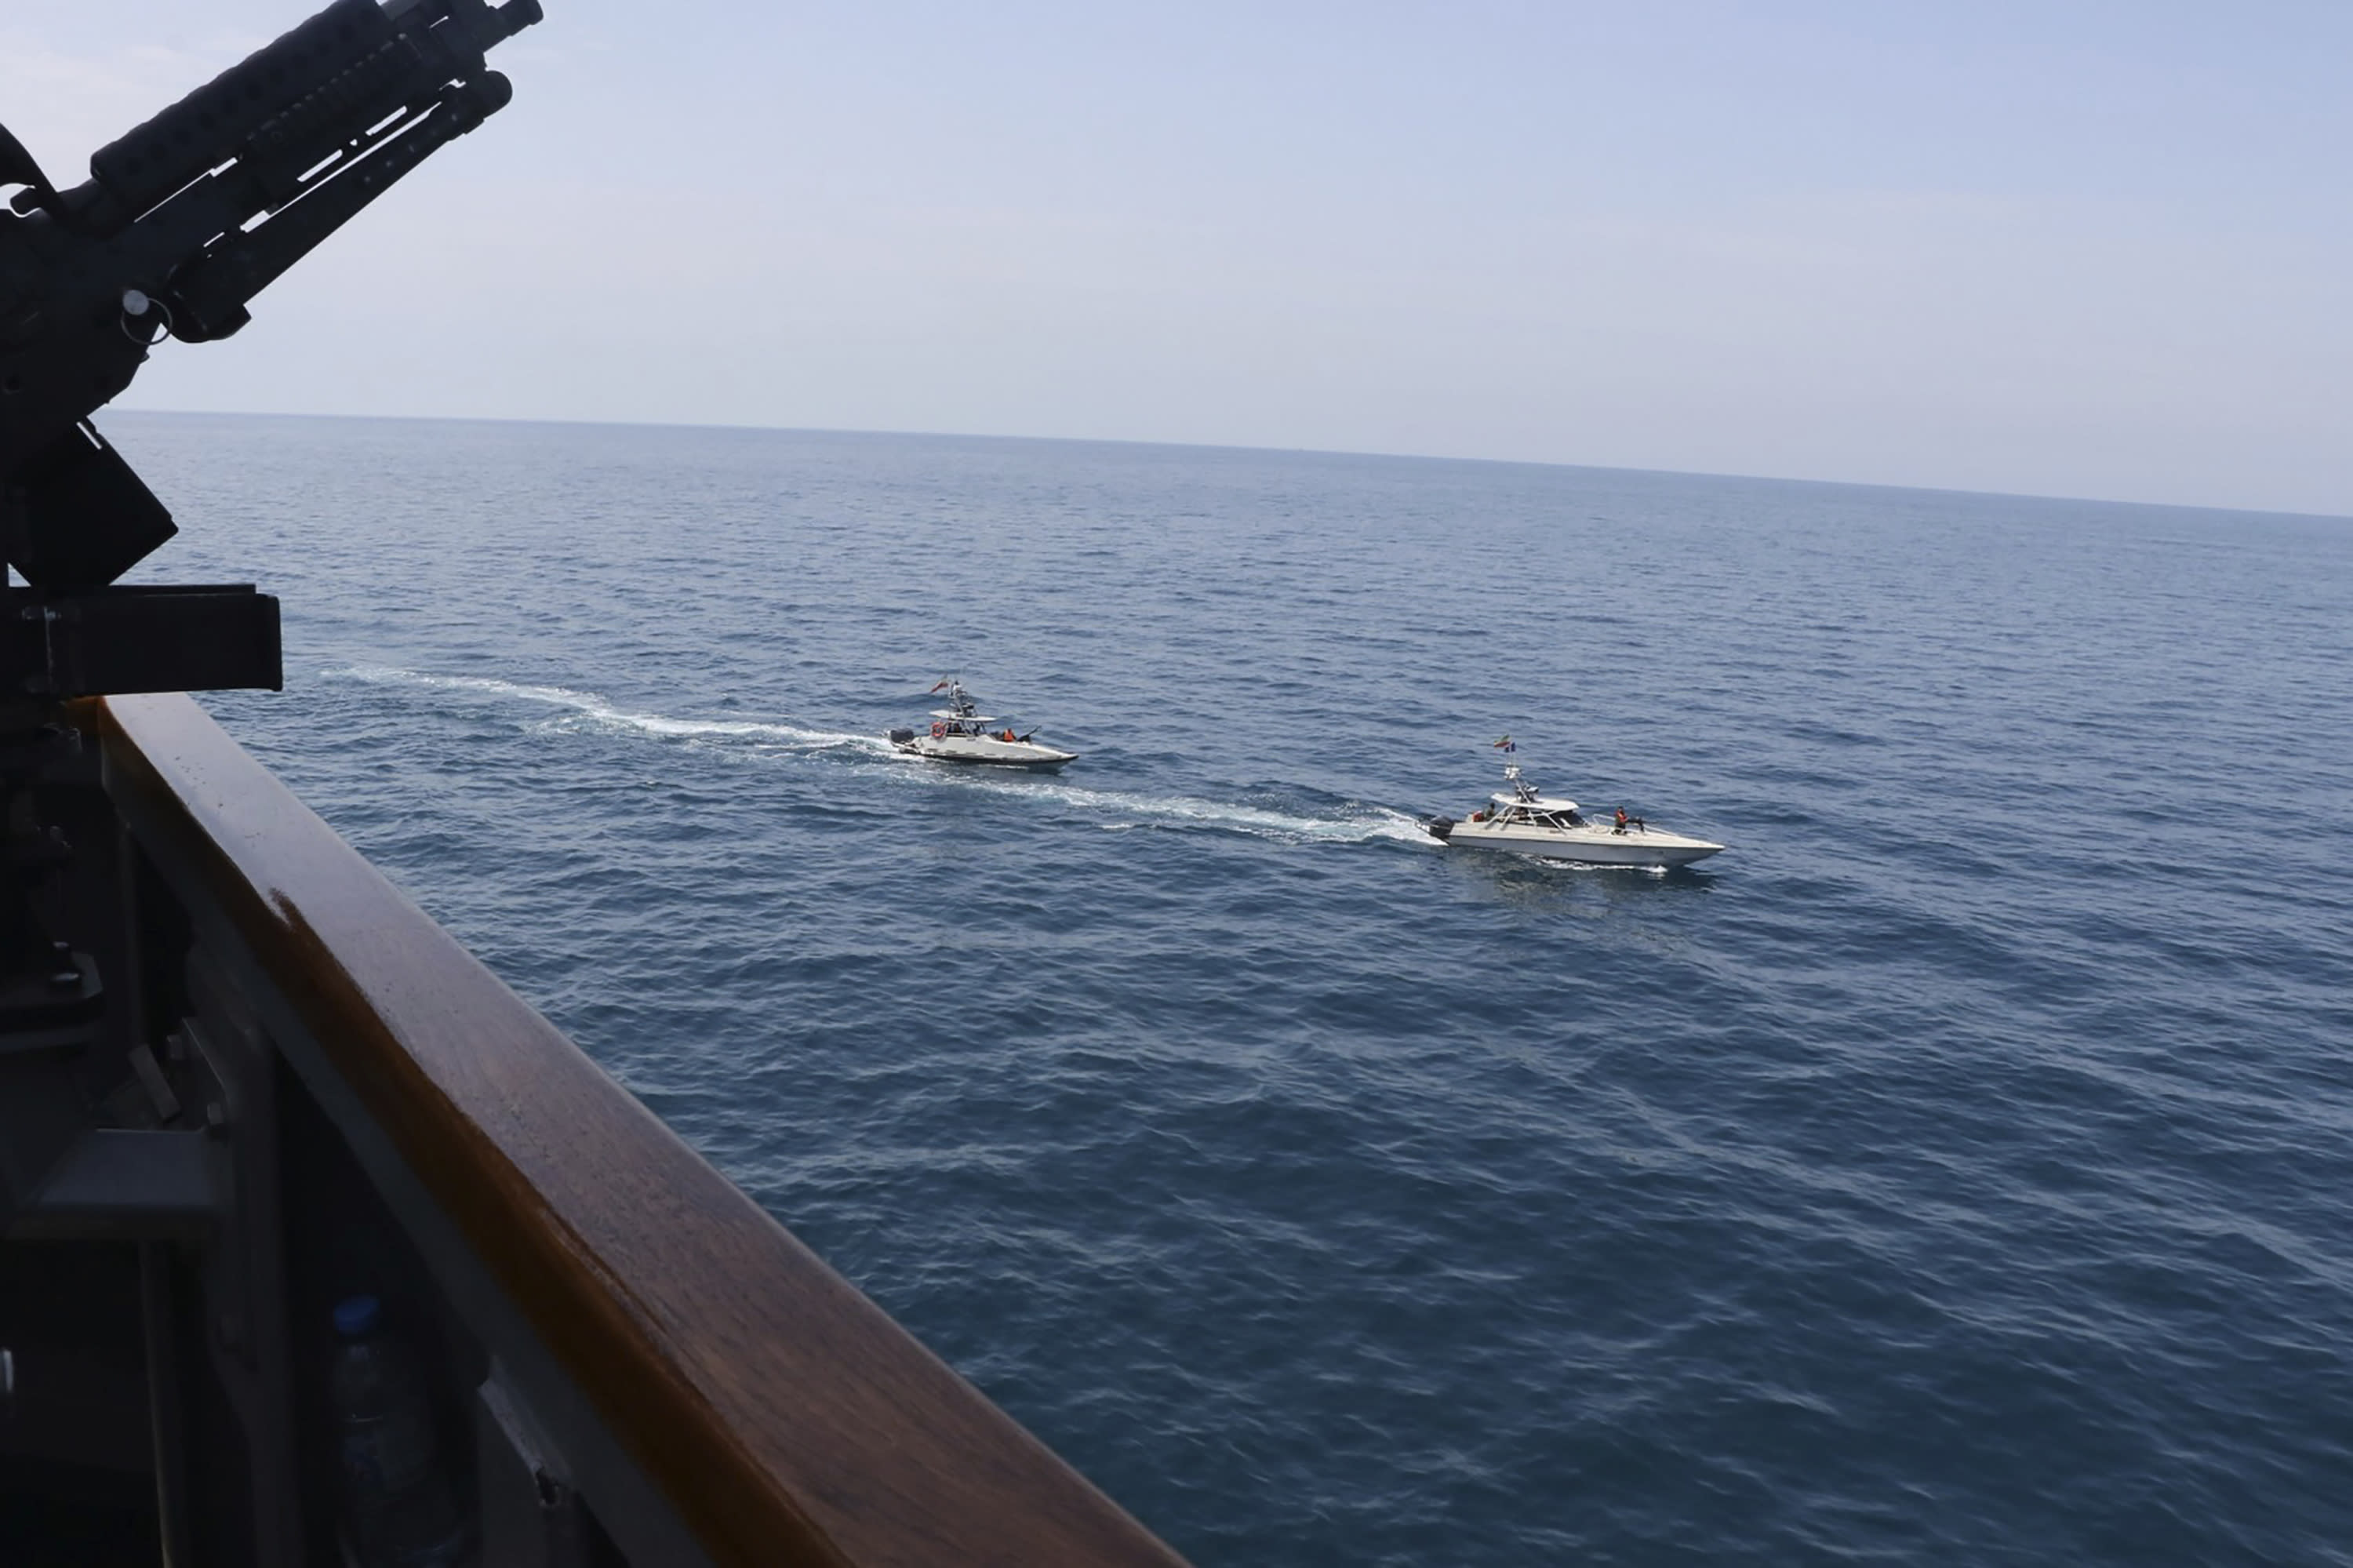 Iranian vessels come dangerously close to American military ships -US military